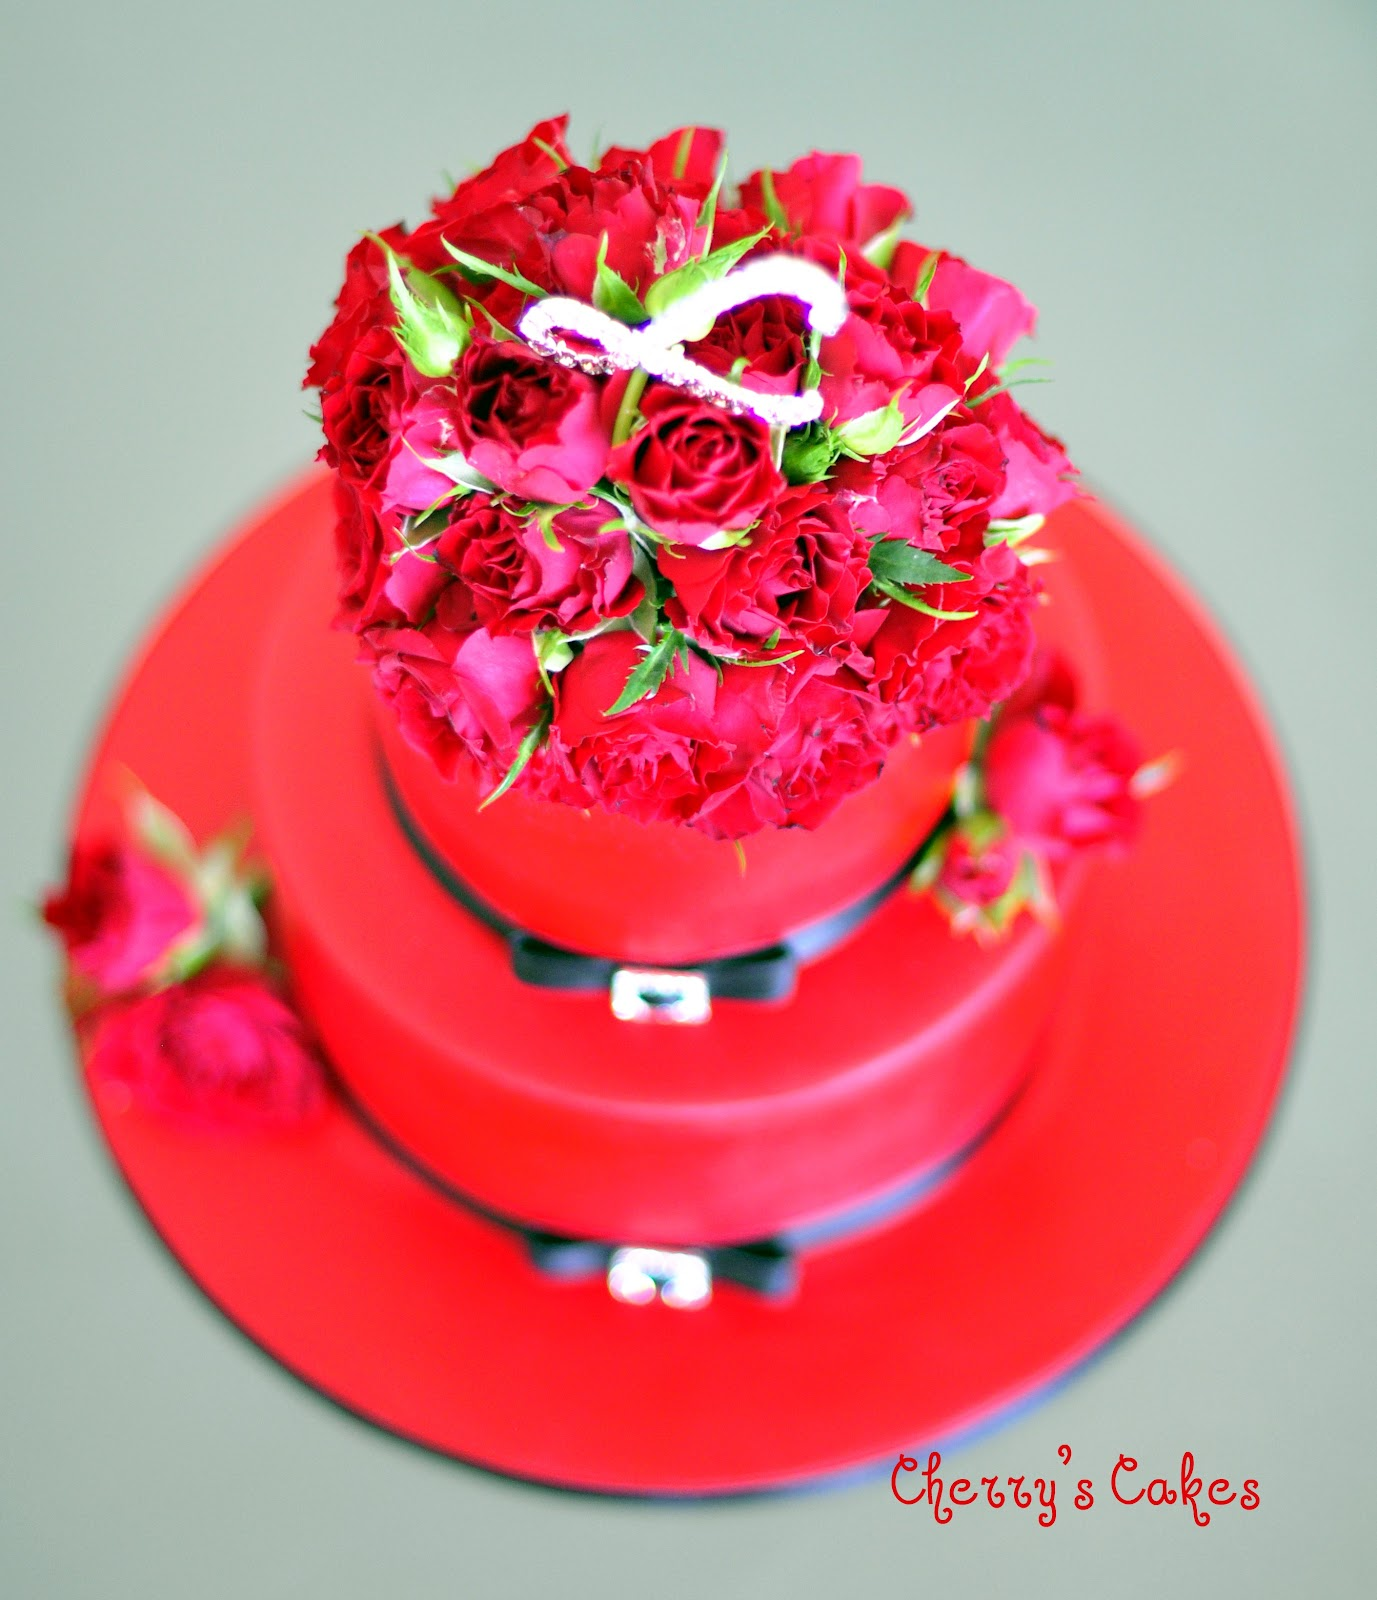 Cherry's Cakes: Red Roses